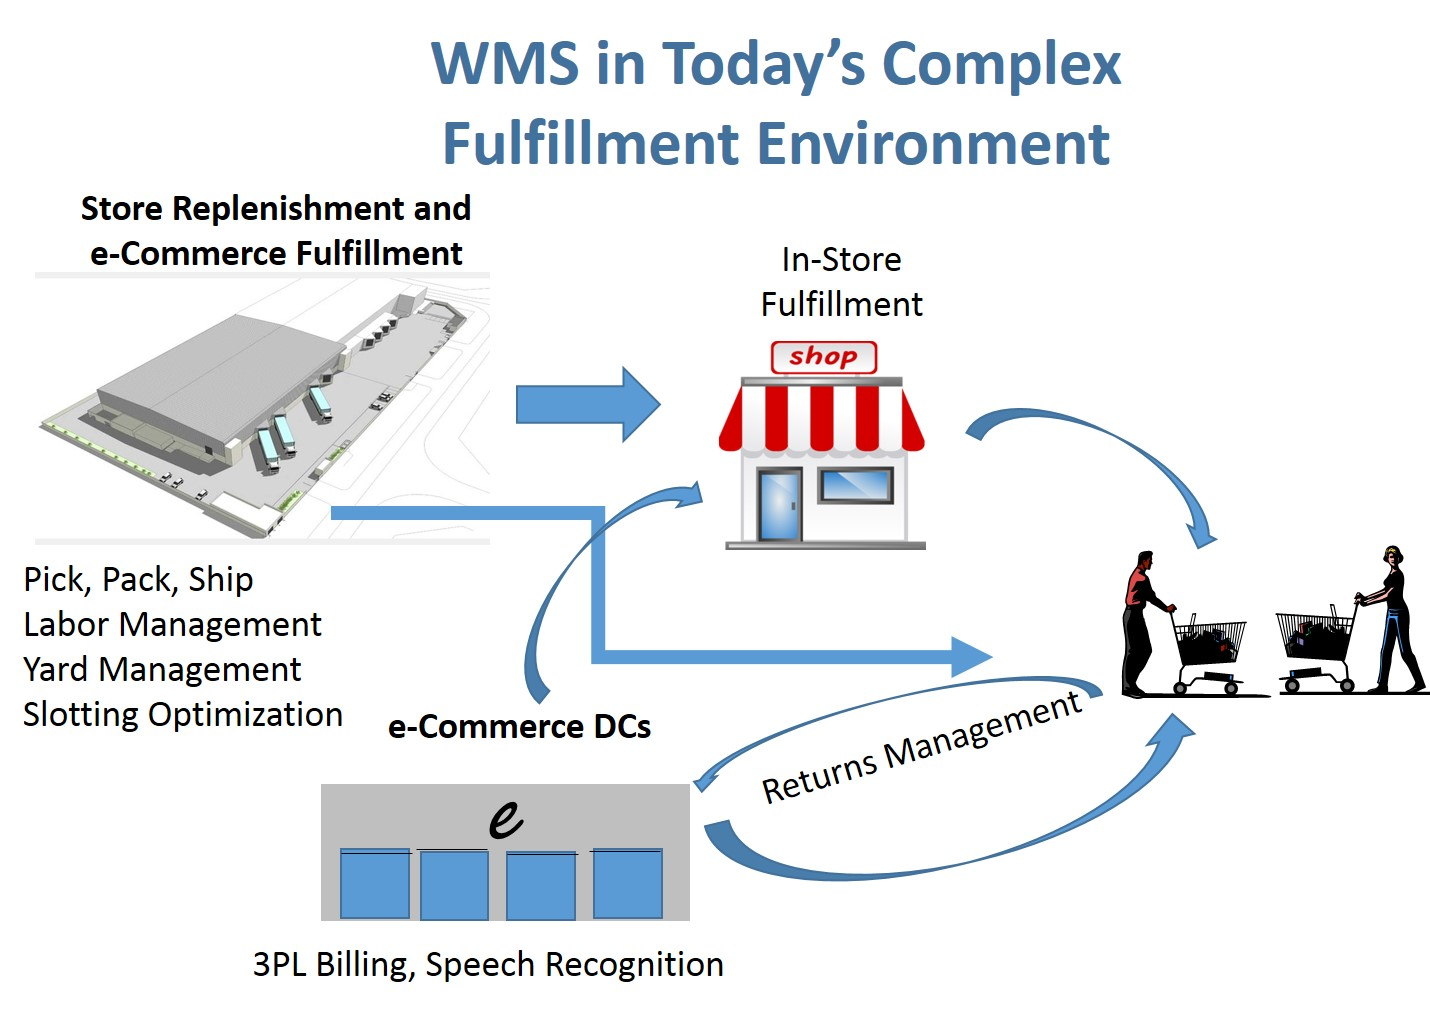 WMS Market Continues to Evolve and Grow | Logistics Viewpoints